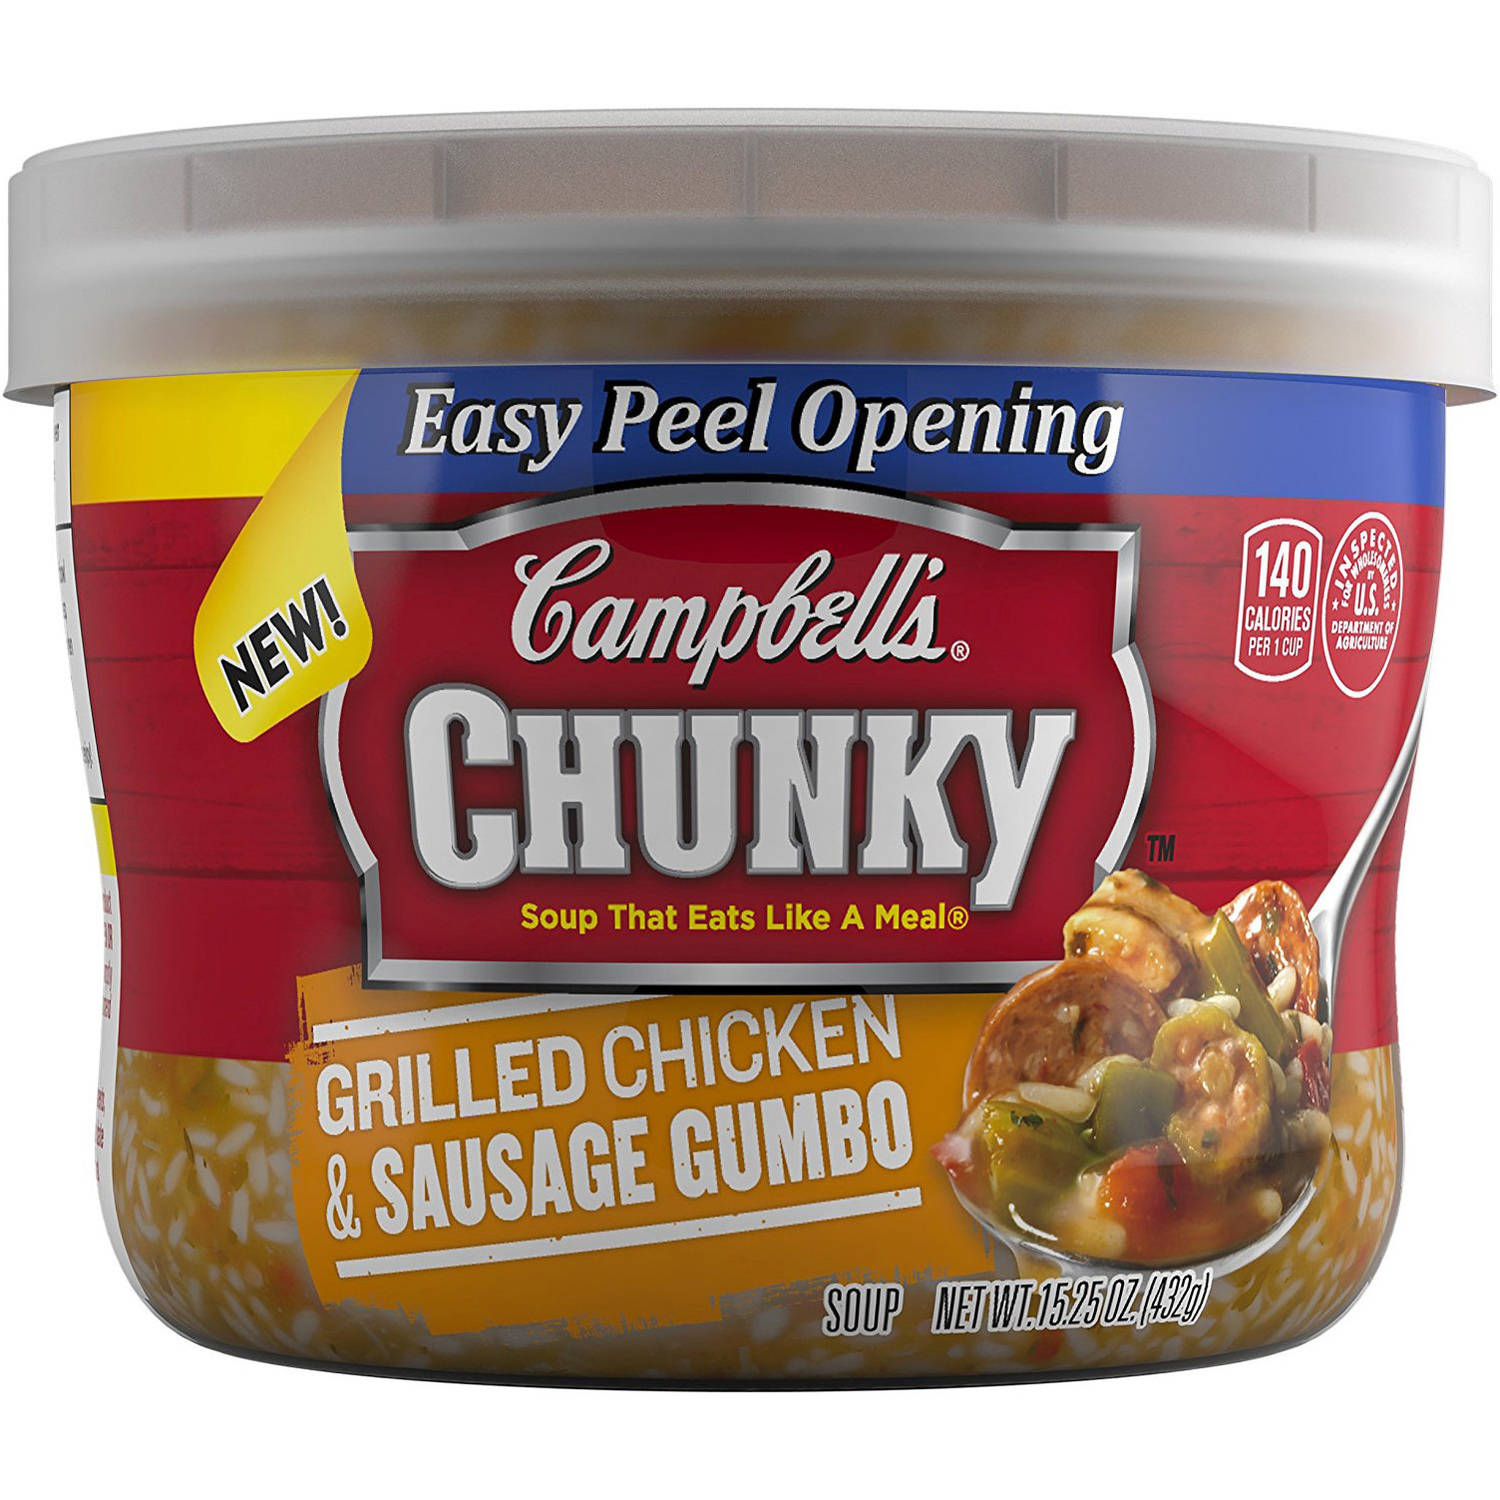 Campbell's Chunky Grilled Chicken & Sausage Gumbo Soup, 15.25 oz, (Pack of 8) by Campbell's